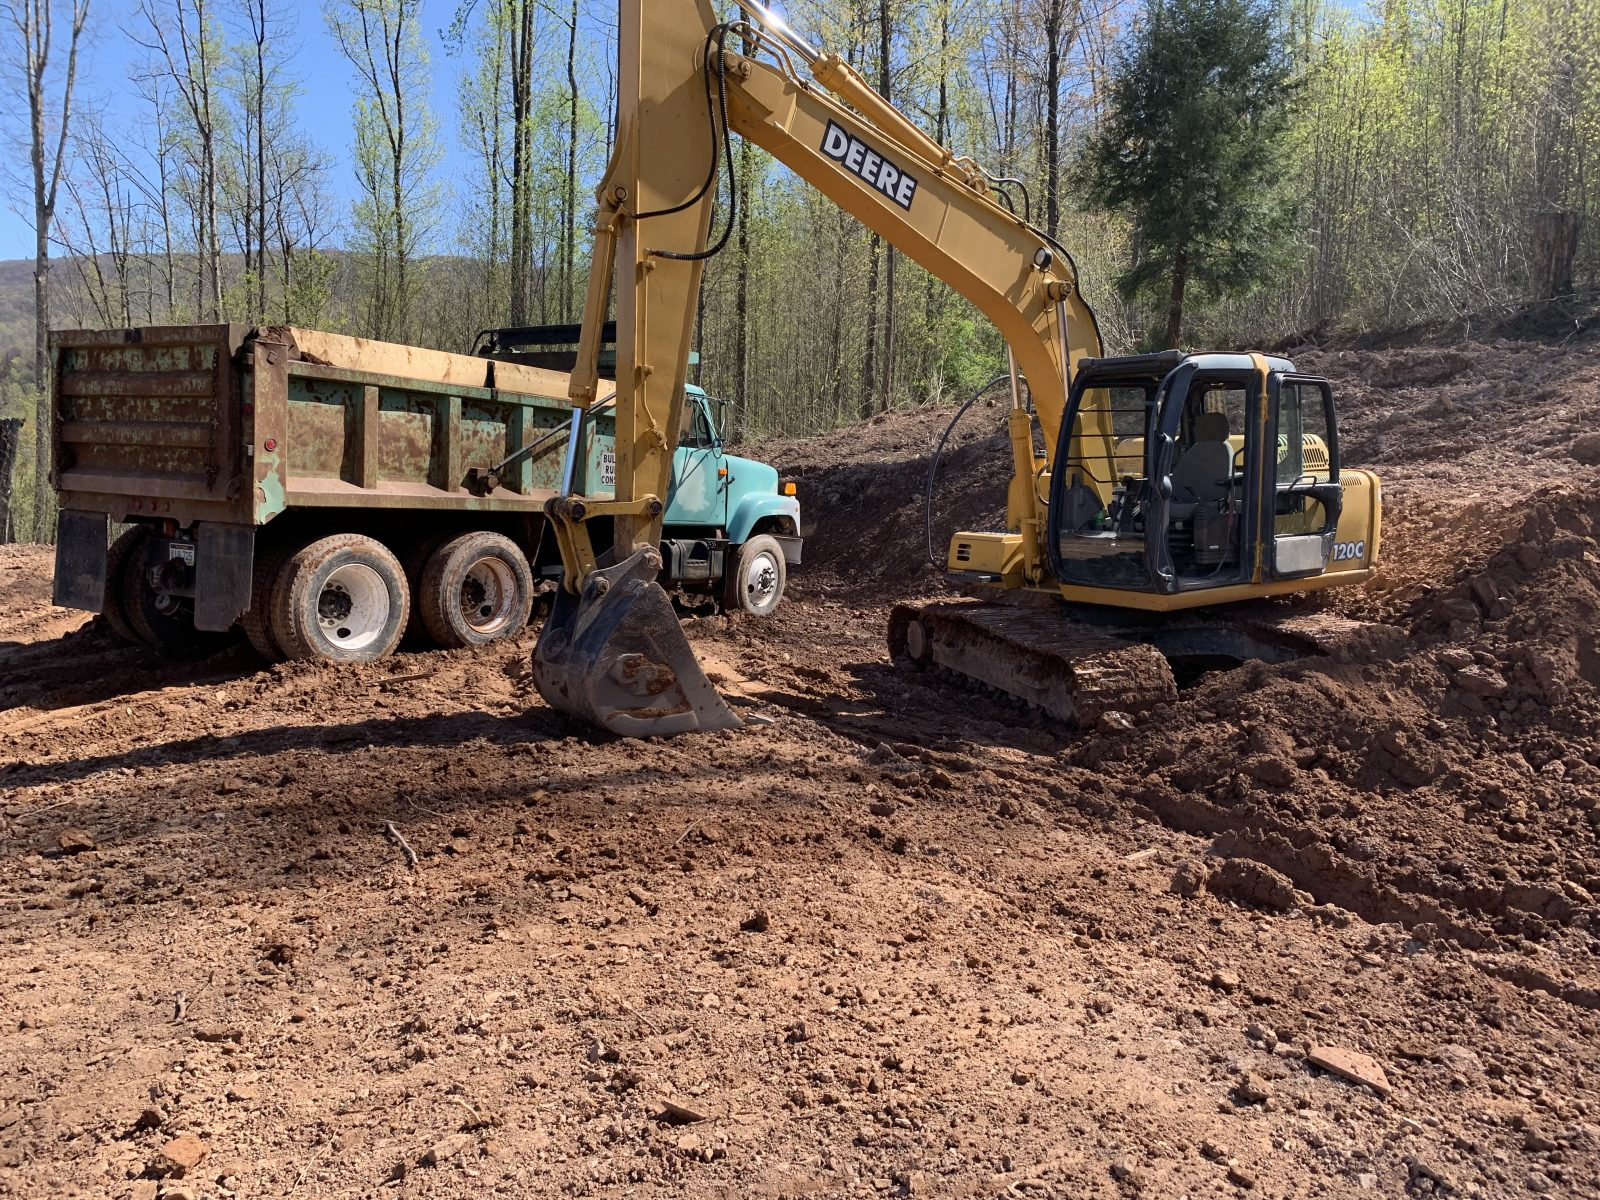 the beginning work of site preparation for a prefab log cabin with a bulldozer and dump truck